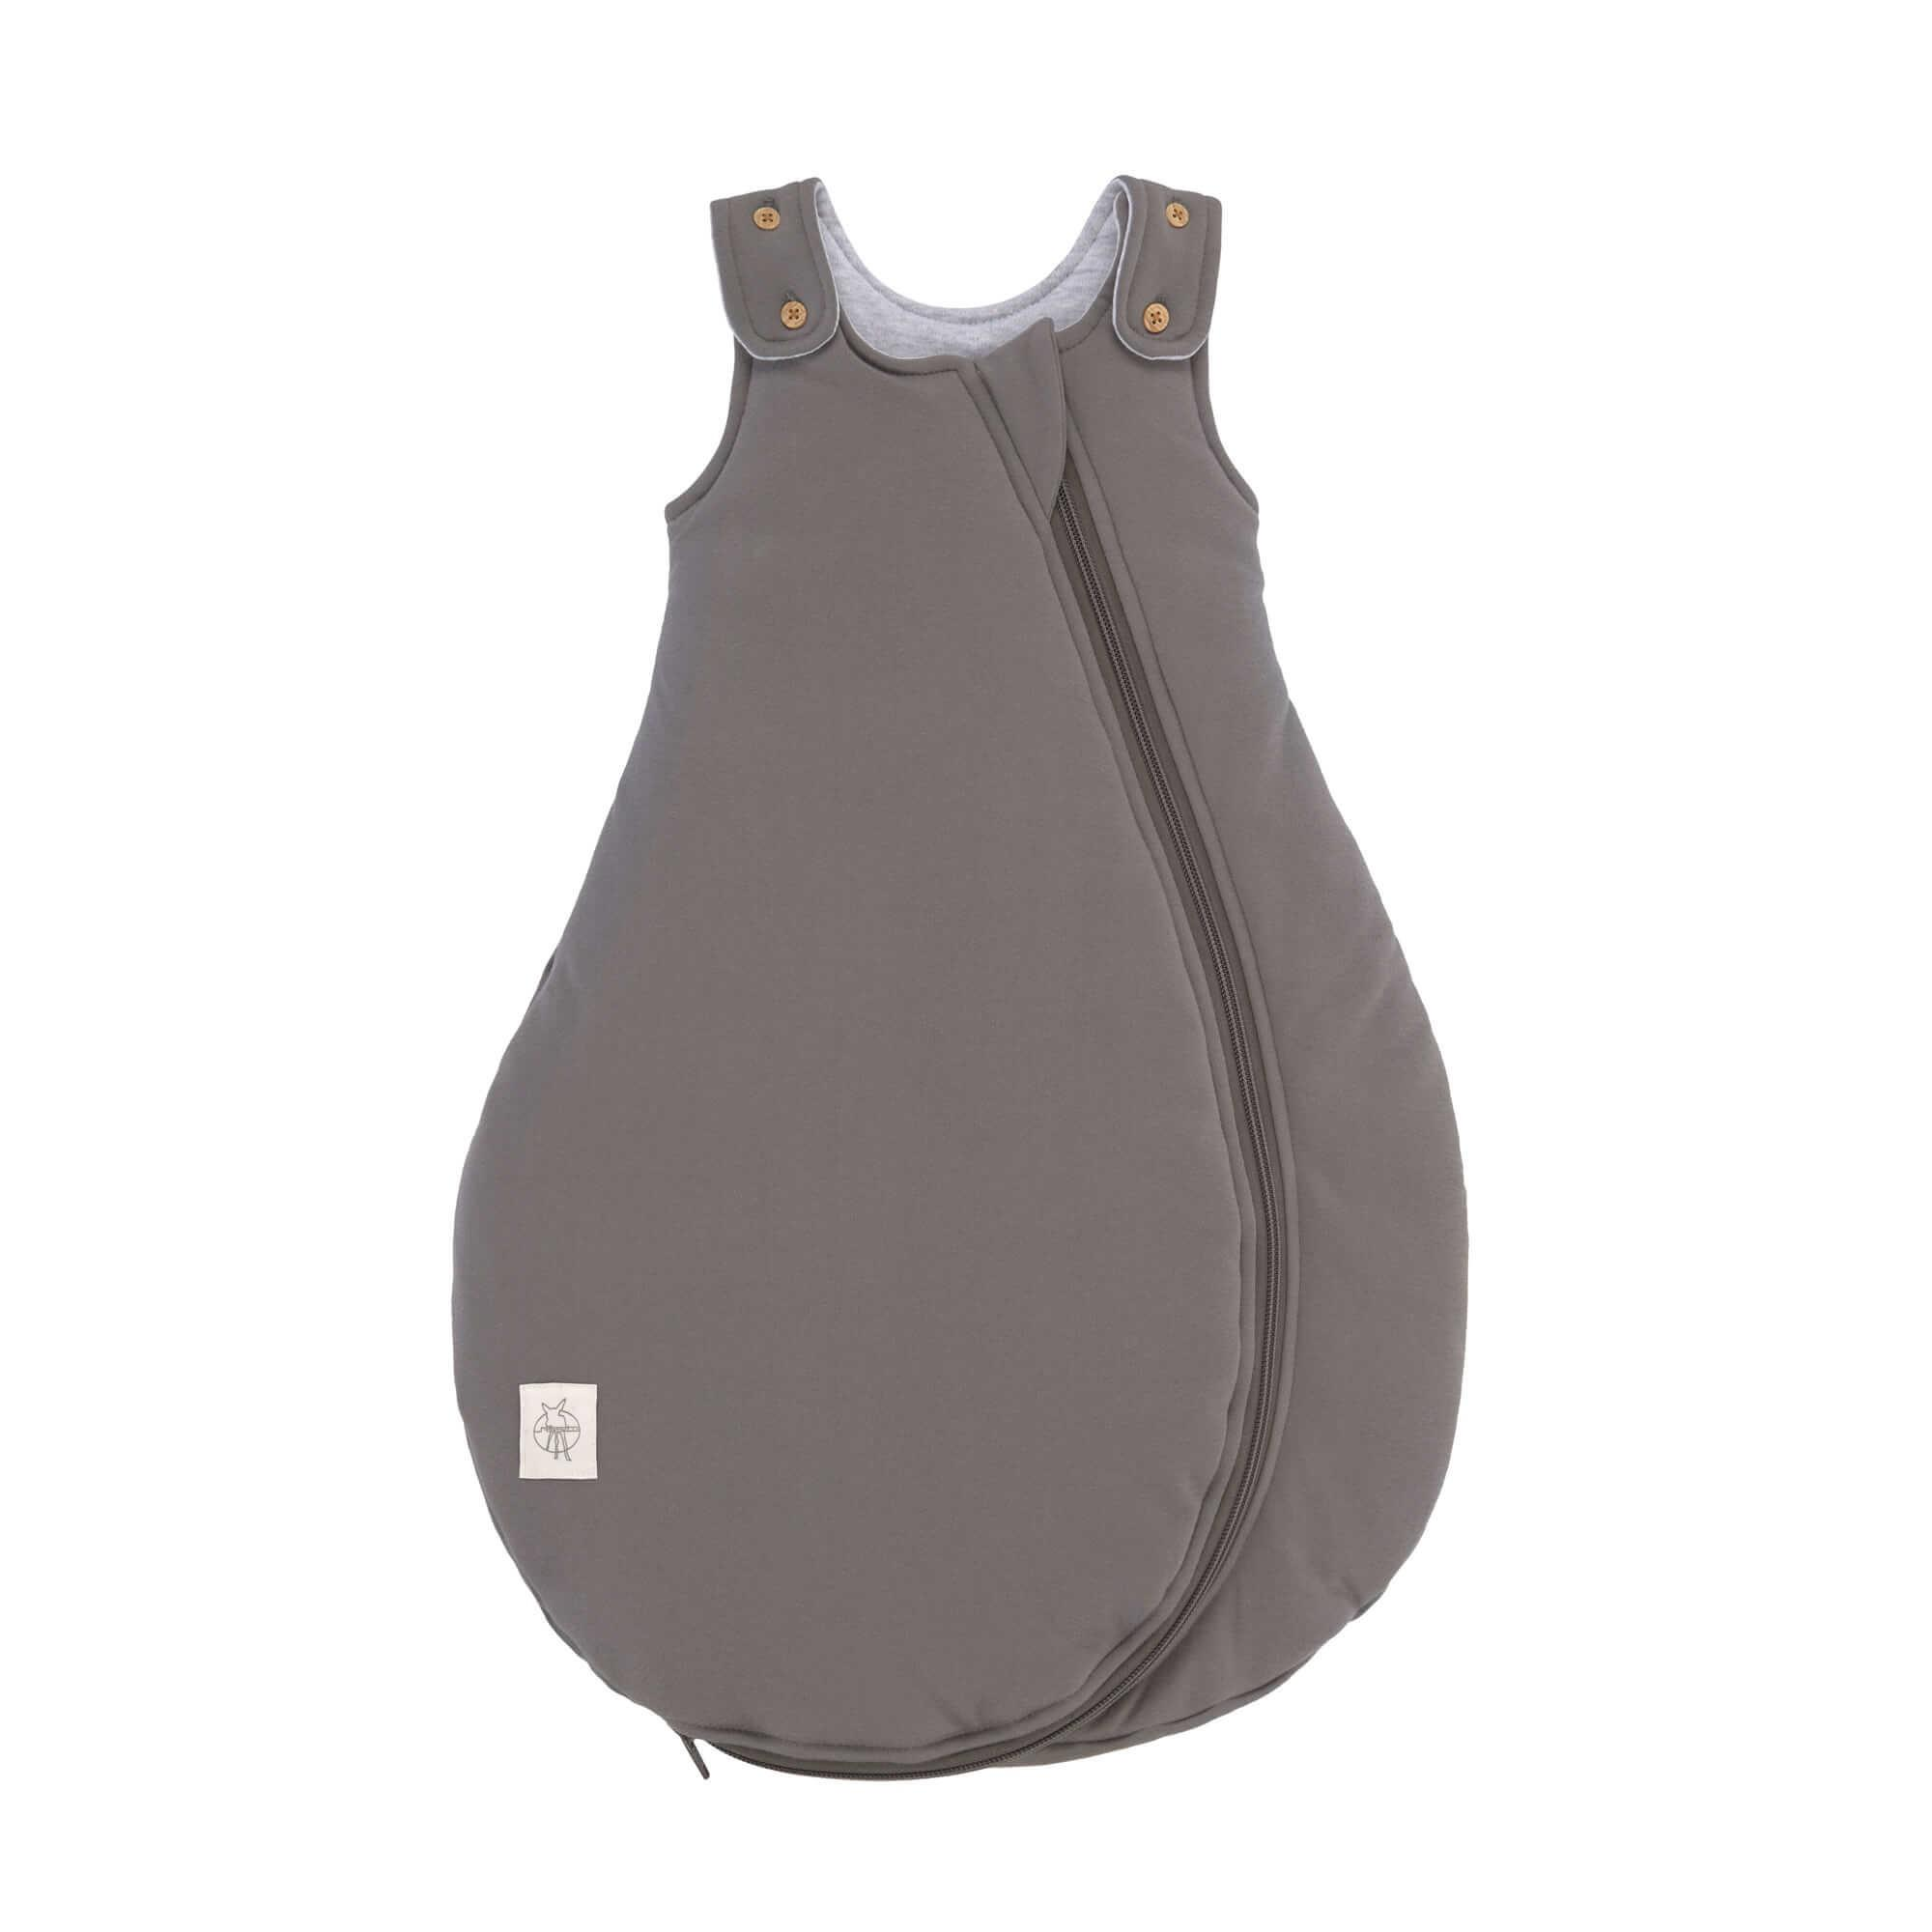 Lassig - Baby Sleeping Bag anthracite, 74/80 7-12M, all season edition